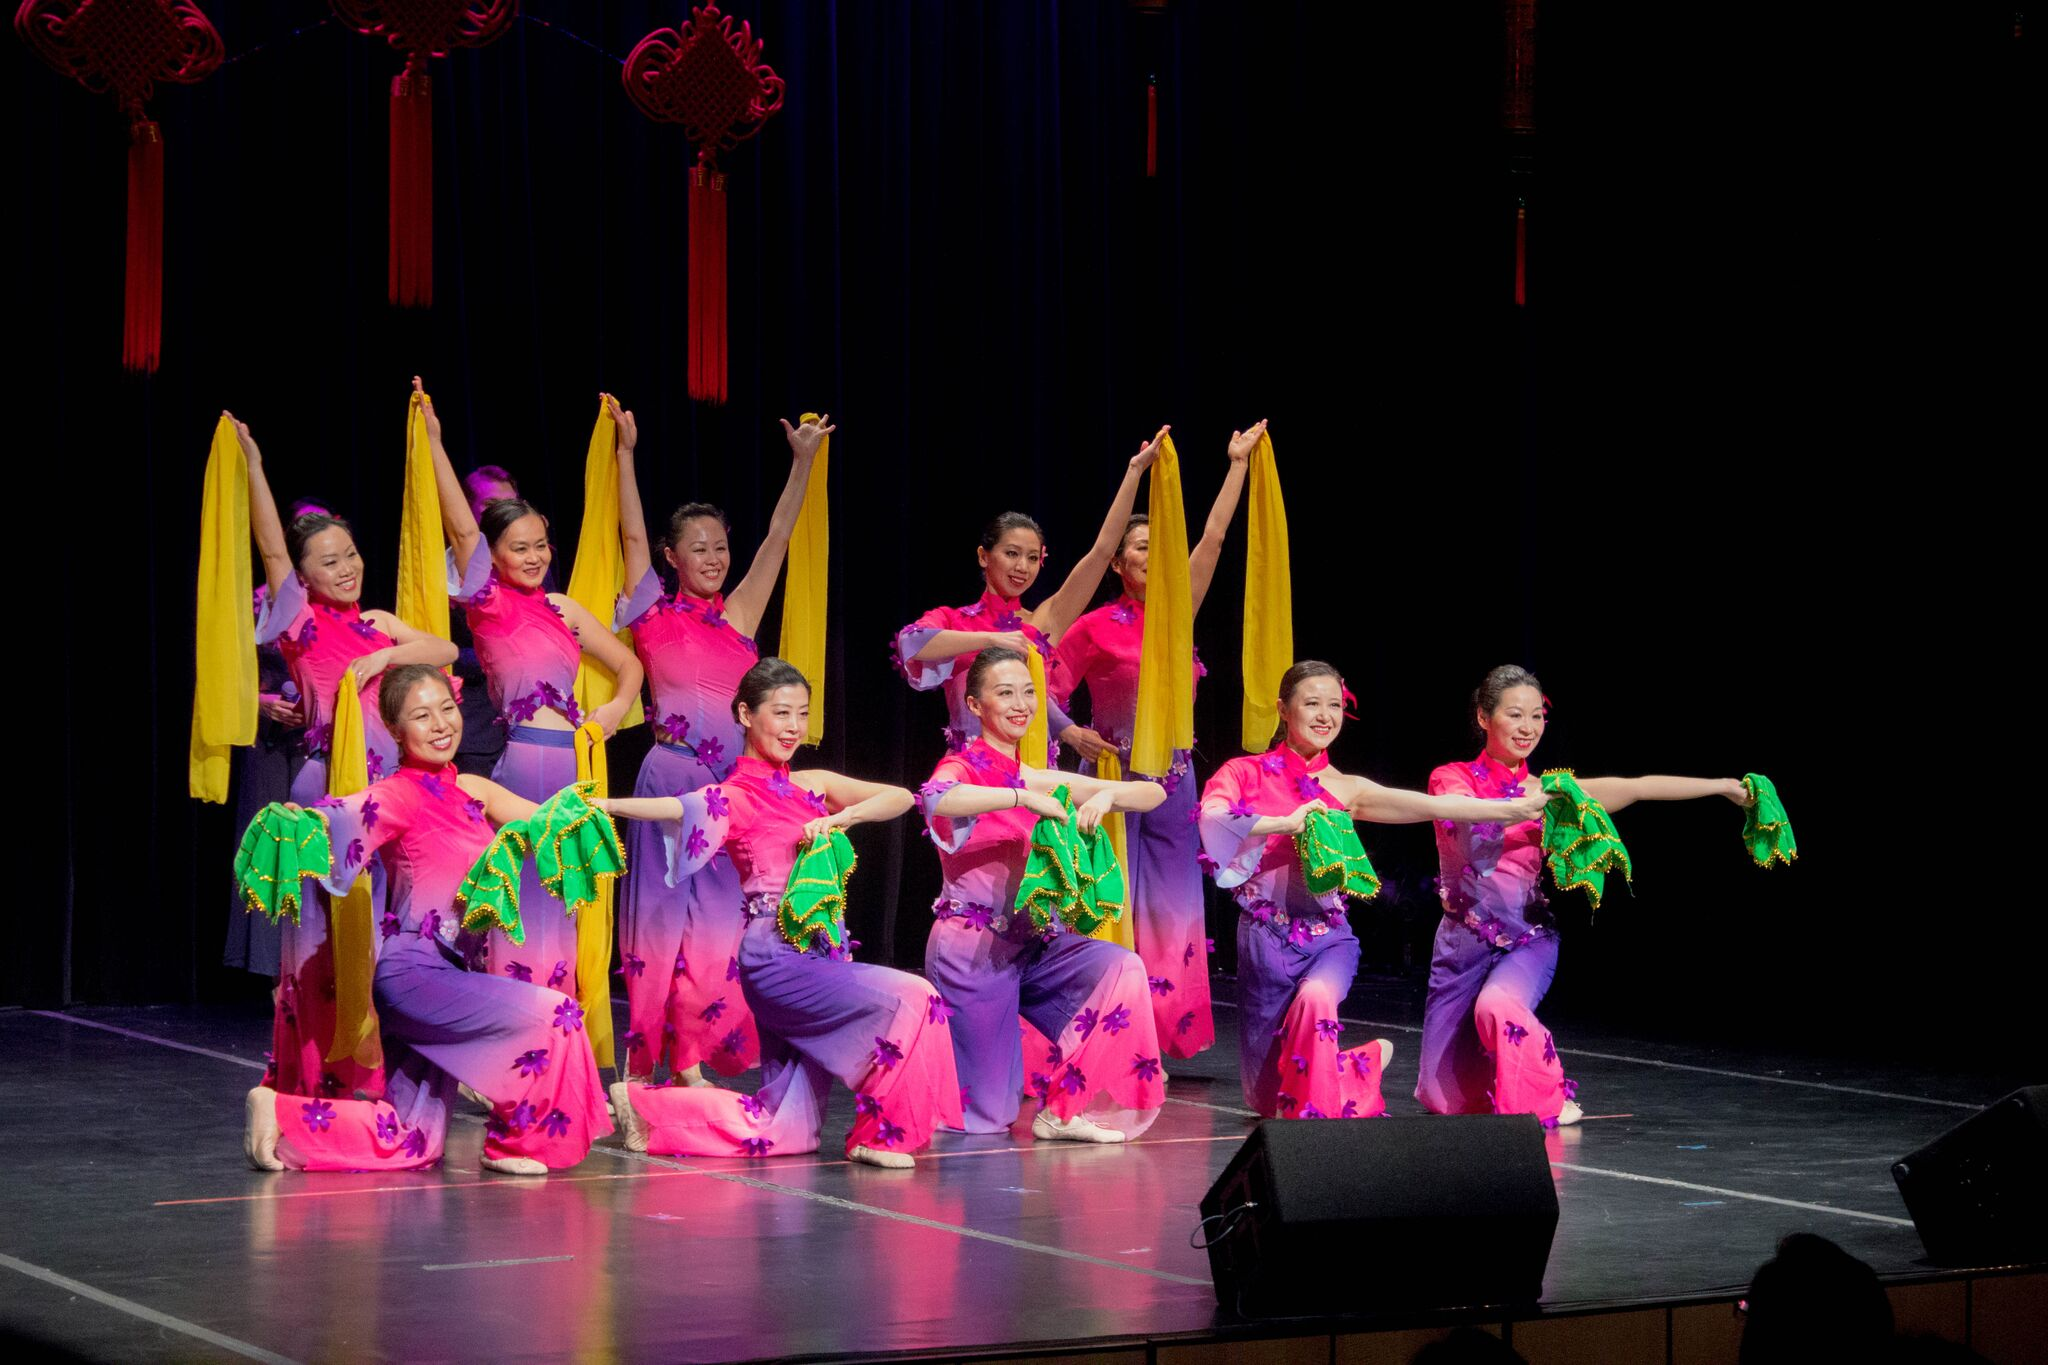 The Long Island Chinese Dance Group kicked off the show with an opening Chinese folk dance. The team was founded in 2011 and practices on a weekly basis.  MANJU SHICACHARAN/THE STATESMAN